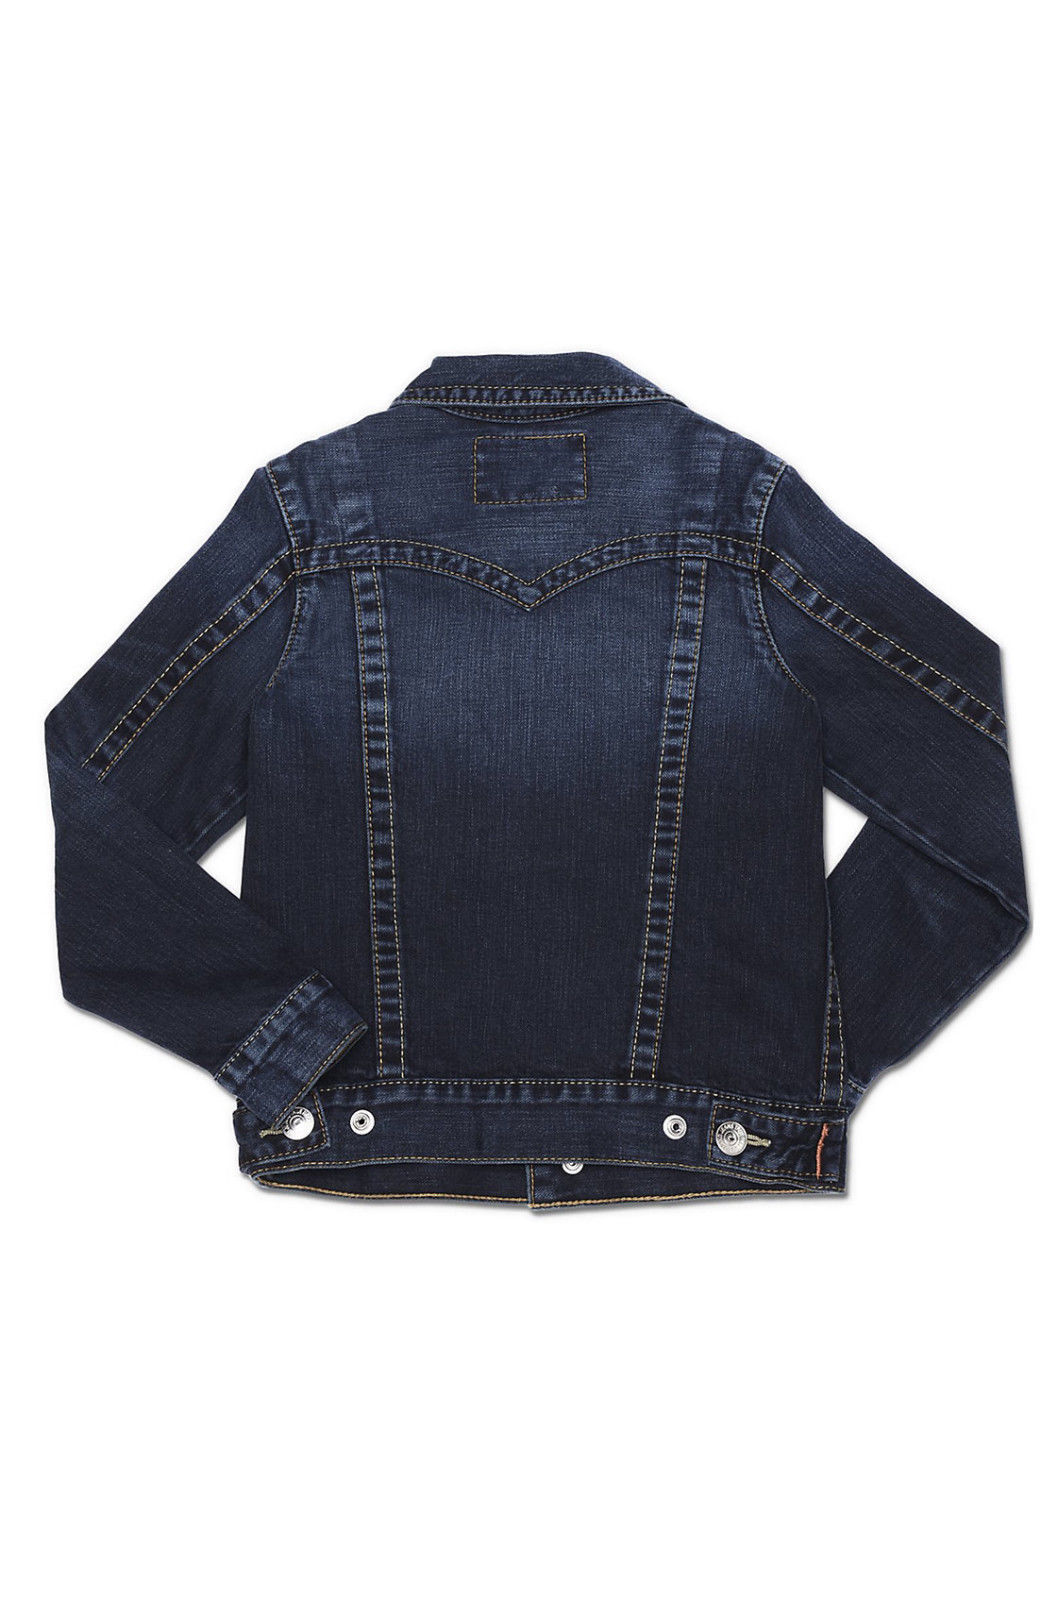 New Boys Girls NWT S True Religion Designer Jean Jacket Dark Jimmy Western $178